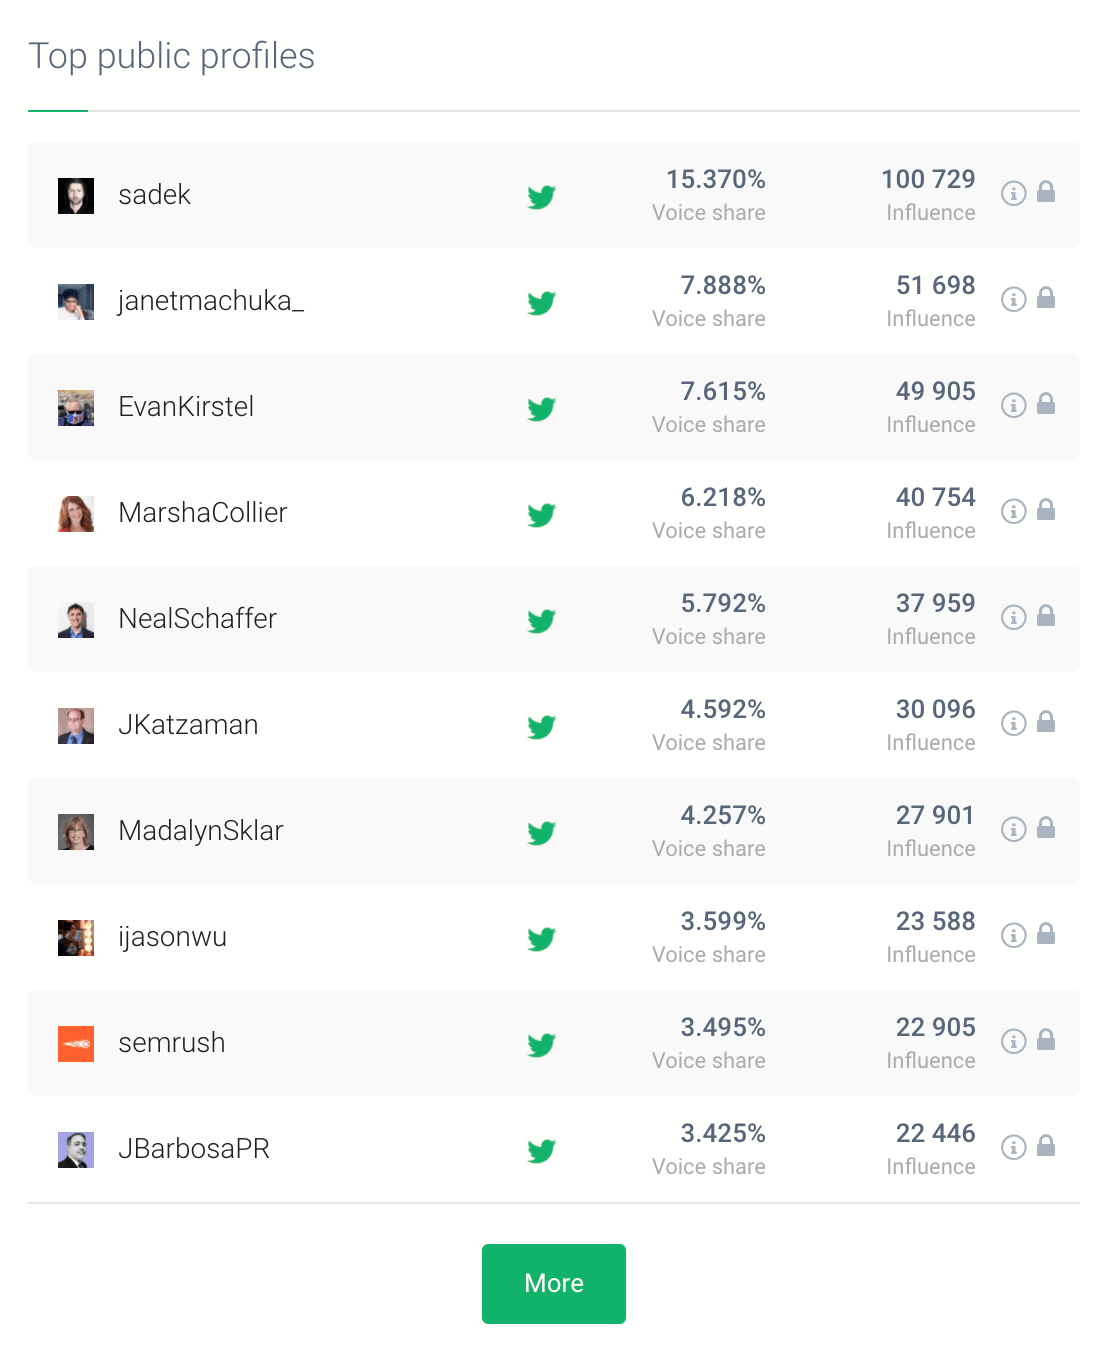 print screen showing popular social media accounts with brand awareness metrics, such as the share of voice and influence